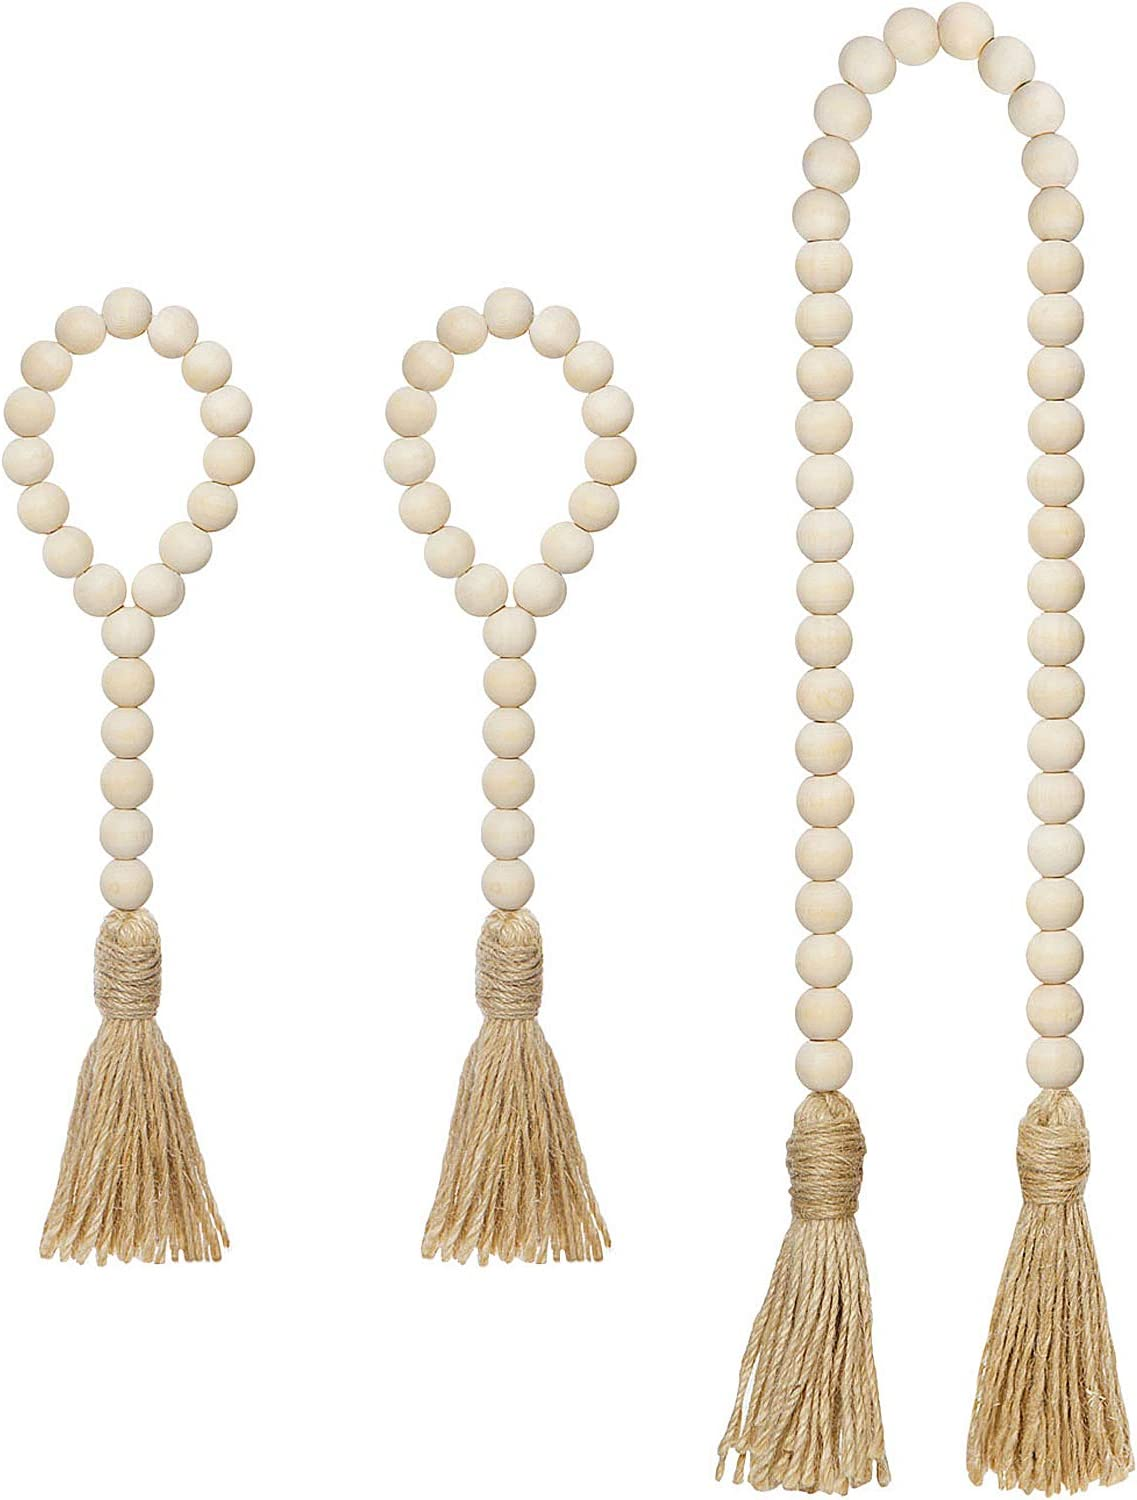 Mkono Wooden Beads Garland with Tassels 3 Pcs Prayer Beads Farmhouse Rustic Wood Bead String Wall Hanging Decor for Baby Nursery Room, Wedding Vase Ornament, Ivory